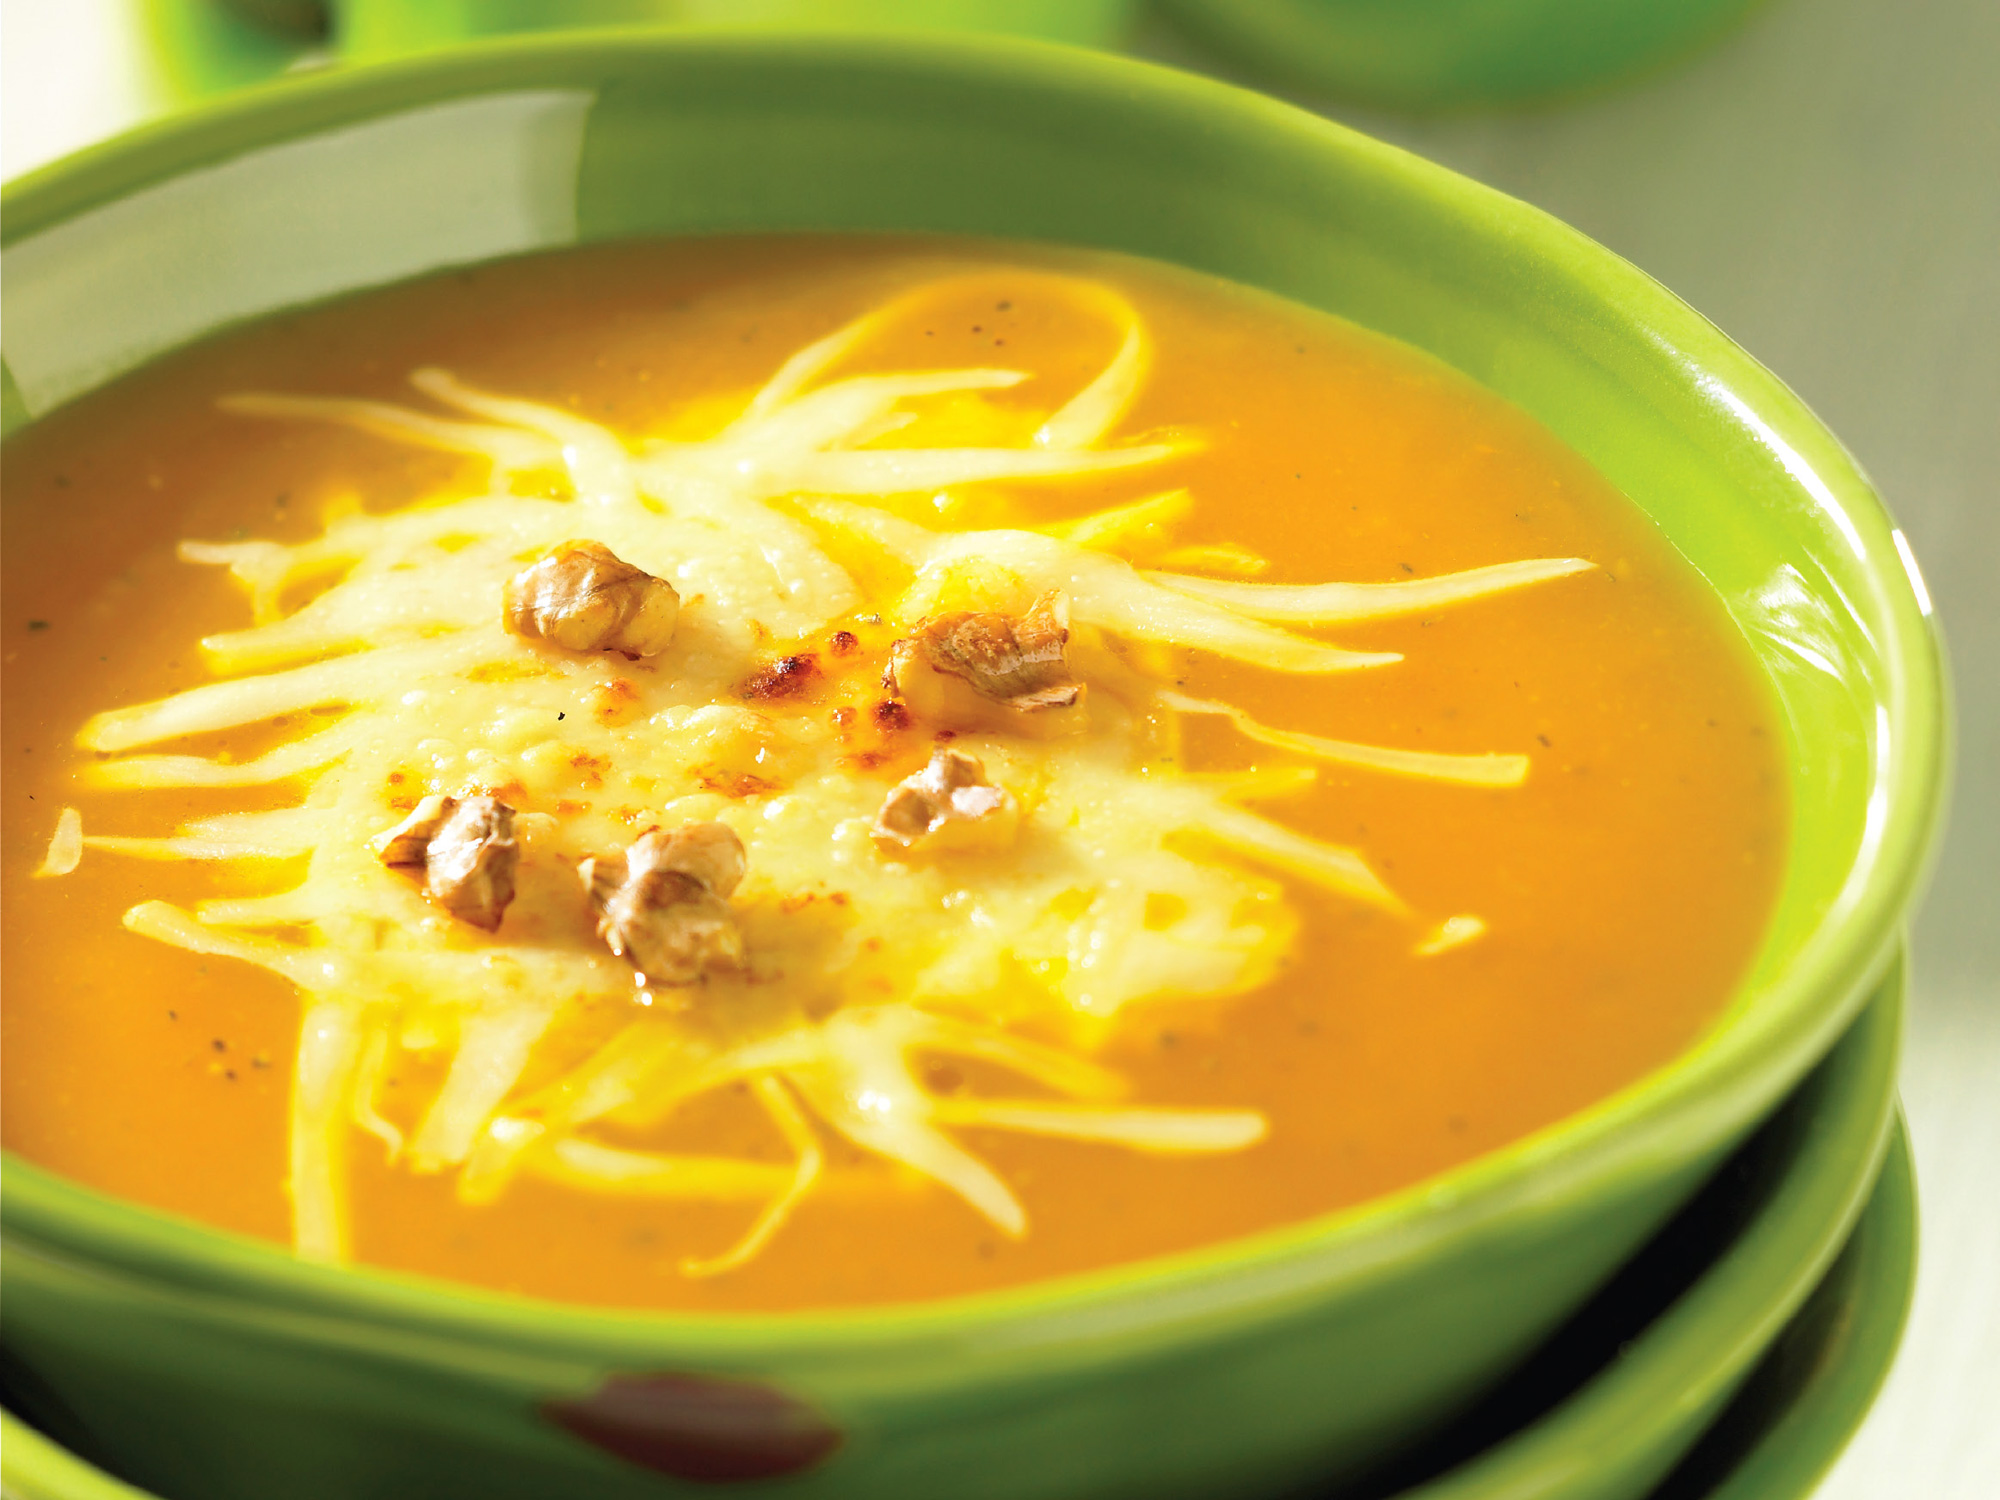 Creamy butternut squash soup topped with Swiss cheese is made in the crockpot.